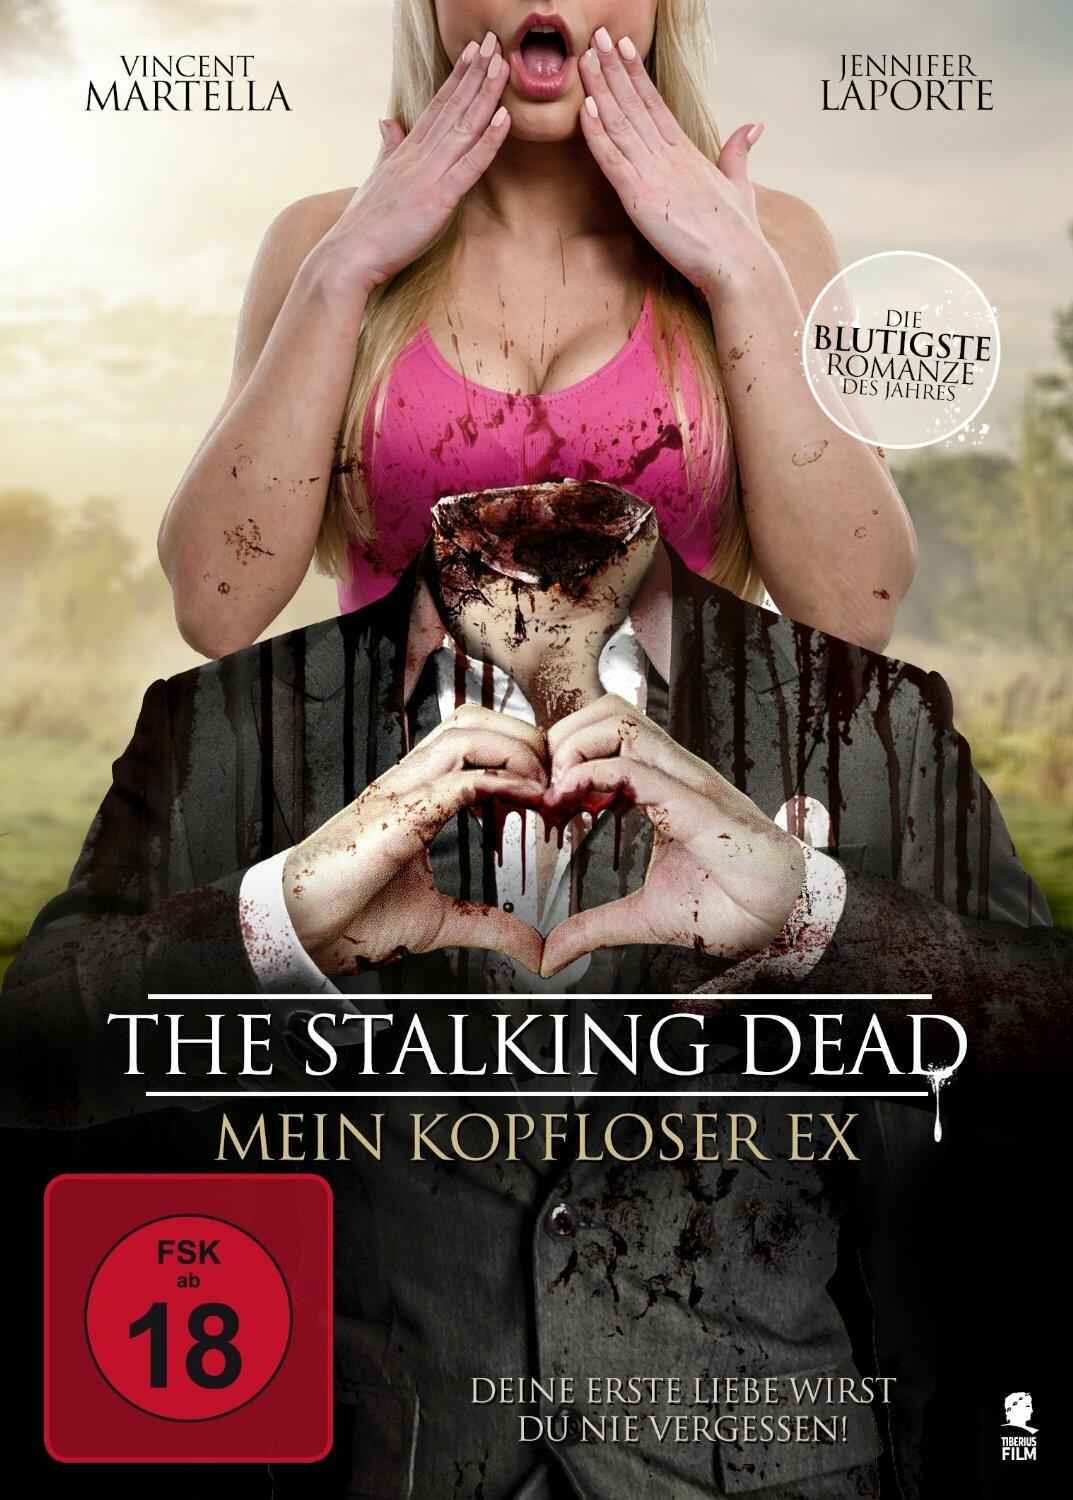 The.Stalking.Dead.Mein.Kopfloser.Ex